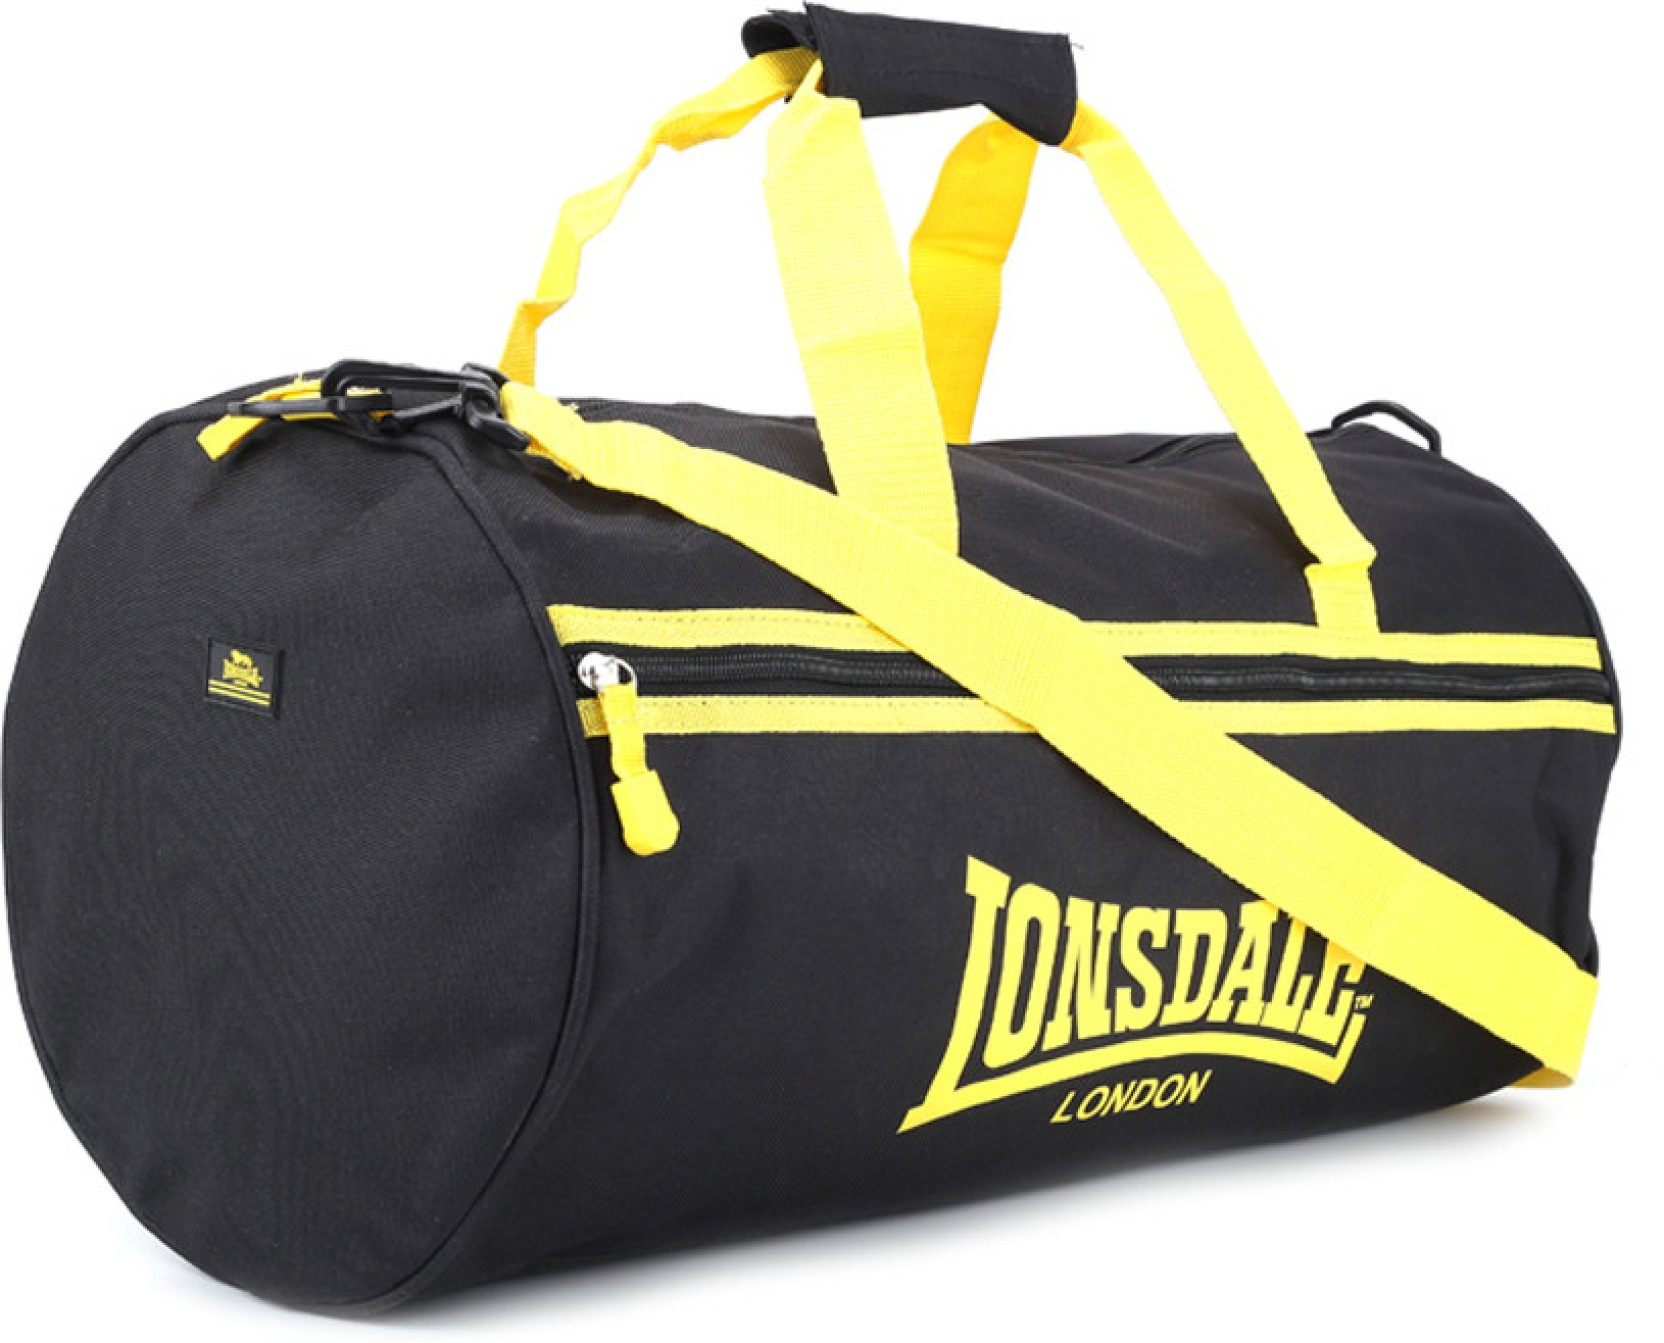 Lonsdale 20 inch 51 cm Travel Duffel Bag Black and Yellow - Price in ... 1438ba637a6db